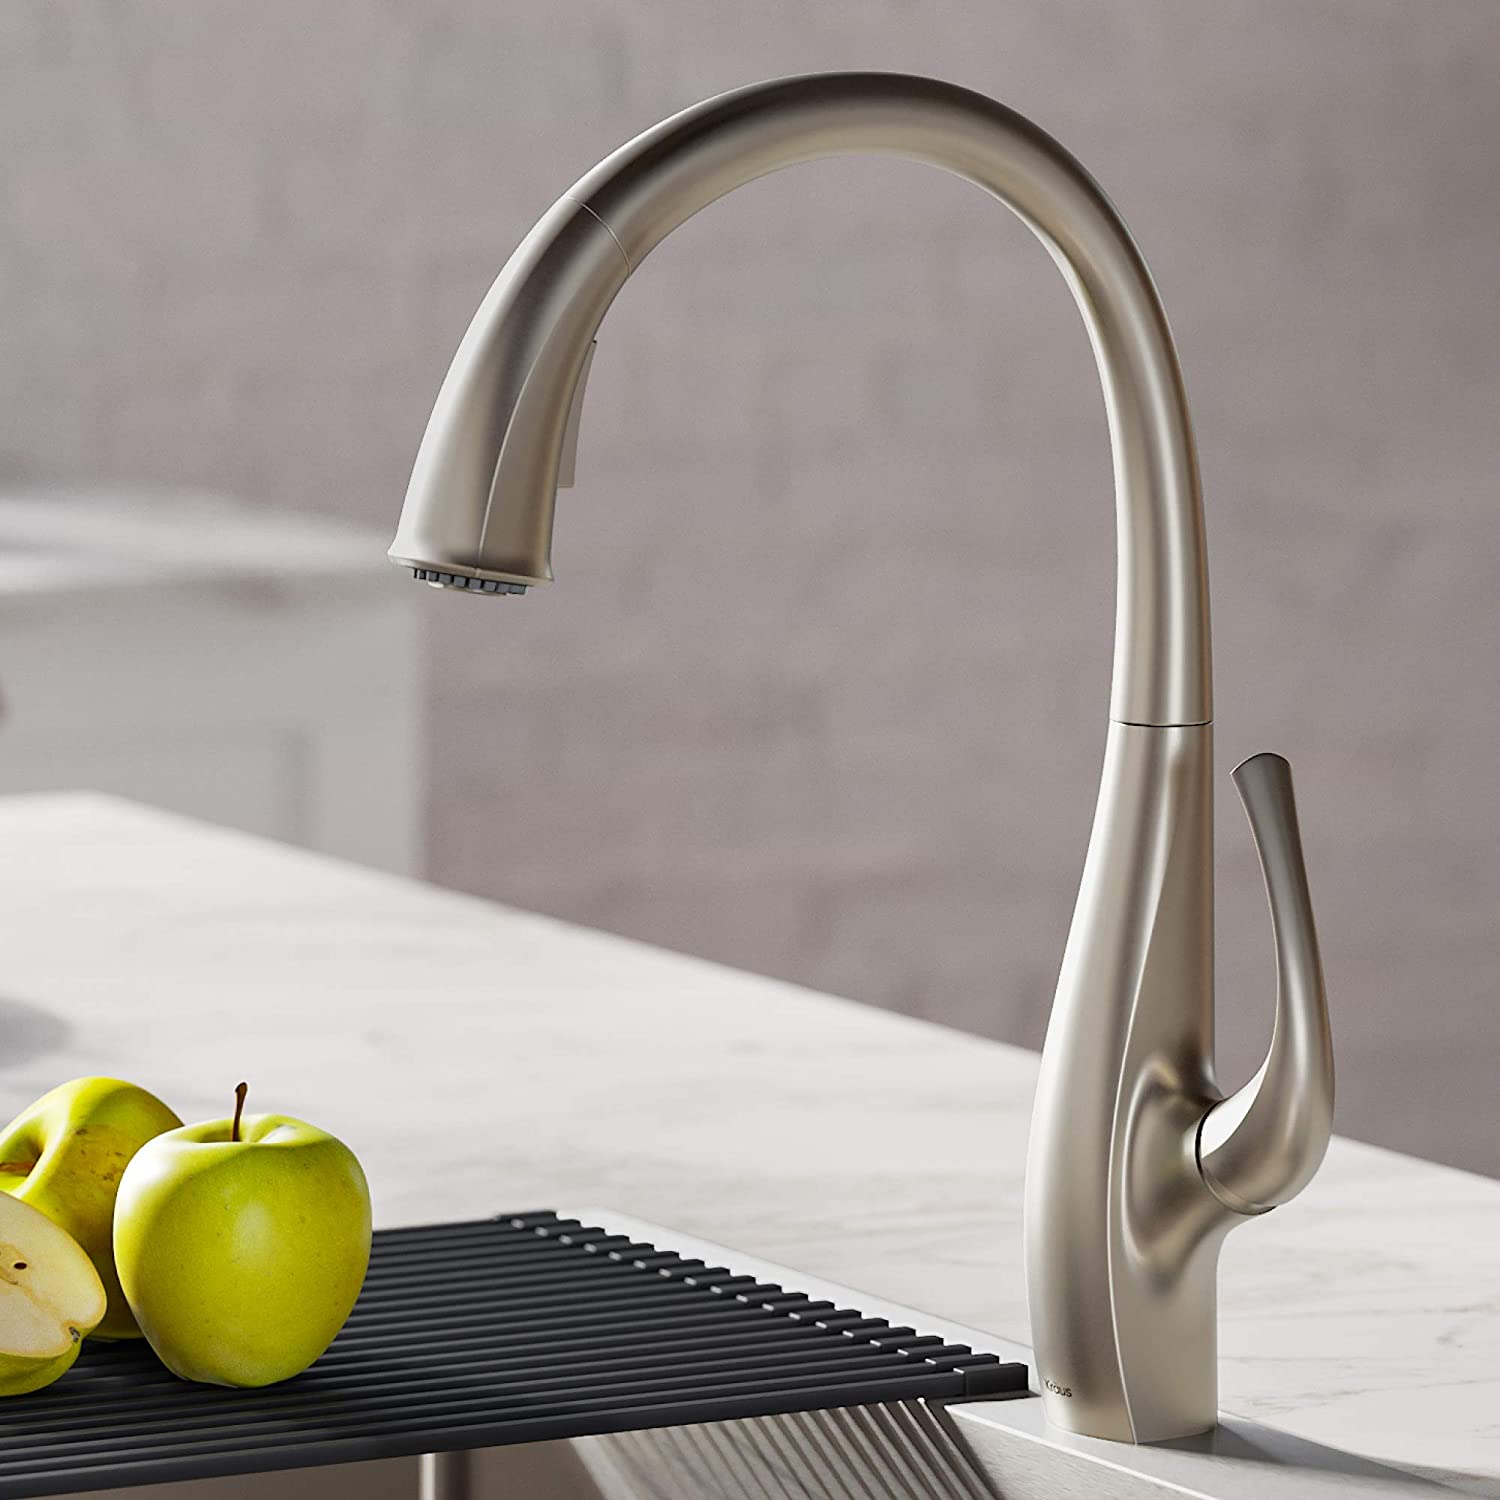 Kraus KPF-1675SFS Ansel Dual Function Pull, Faucets for Kitchen Sinks, Single-Handle, Spot Free Stainless Steel Finish